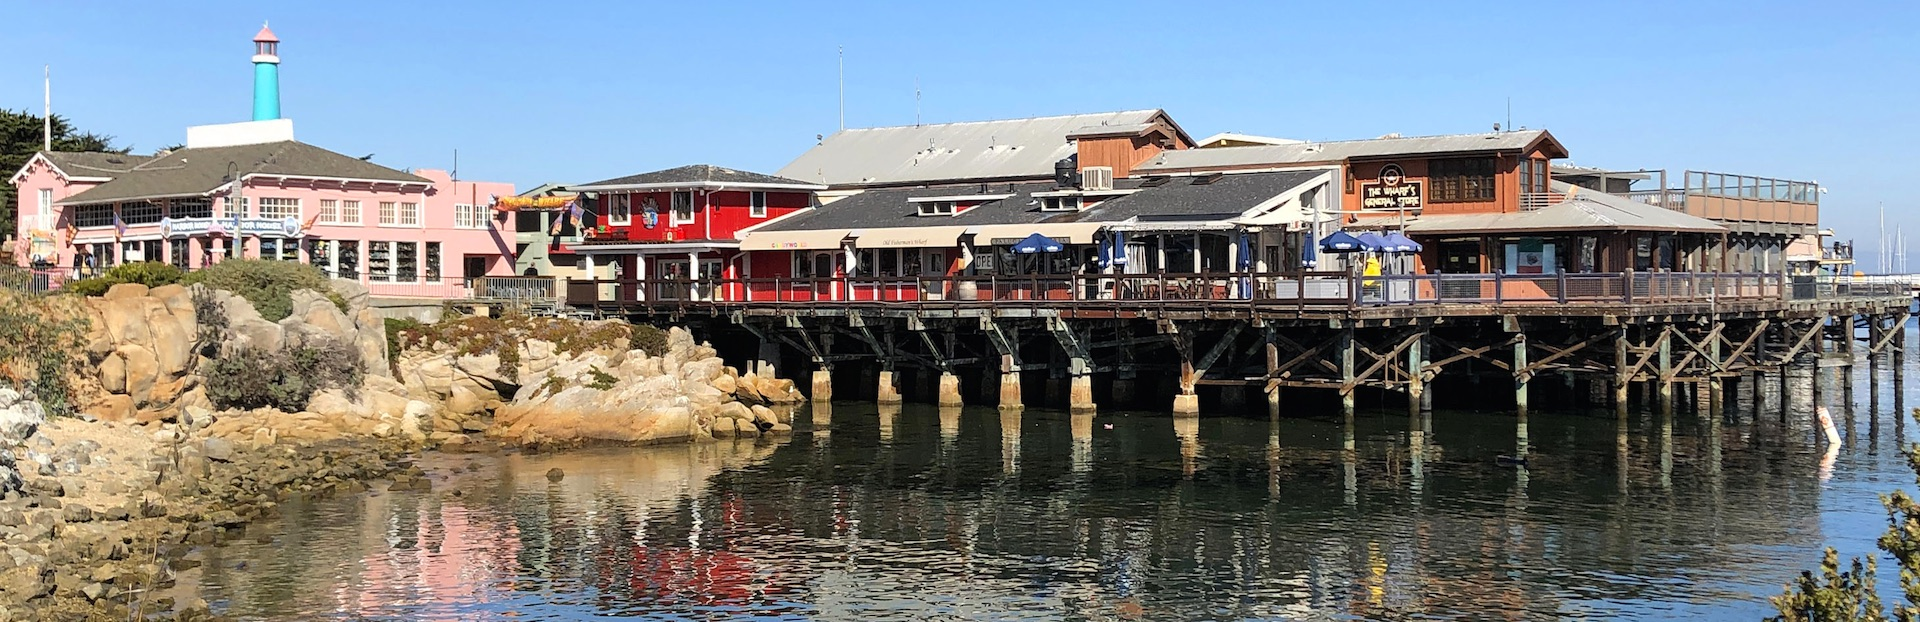 Monterey Peninsula audio tour: Monterey State Historic Park and Fisherman's Wharf Walking Tour